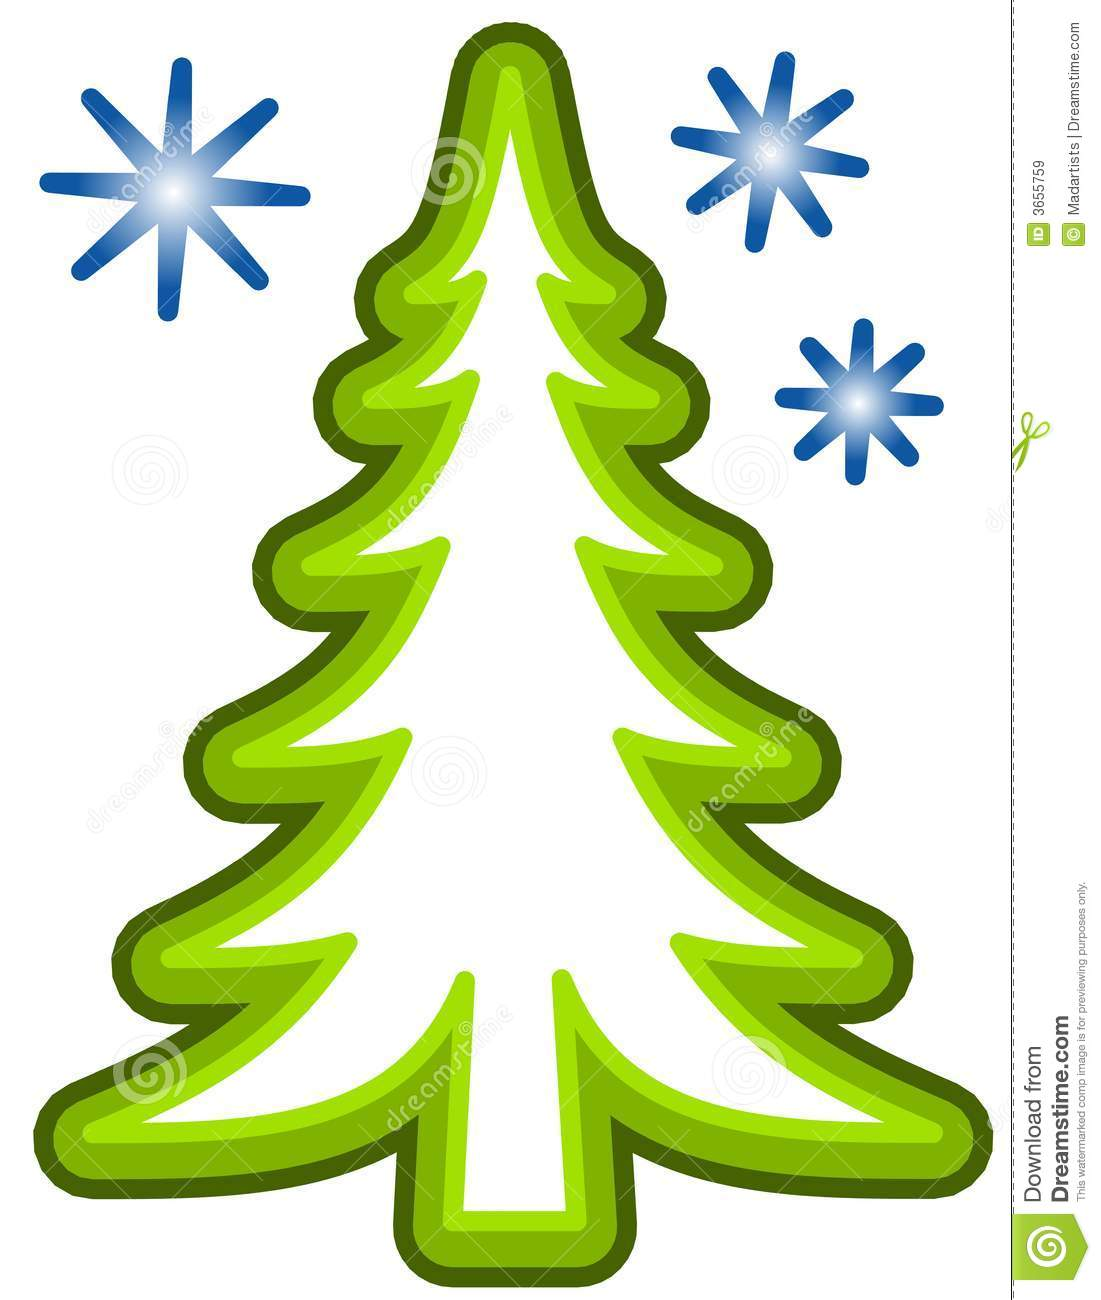 simple christmas tree clip art stock illustration illustration of rh dreamstime com clip art for christmas lights clip art for christmas holiday